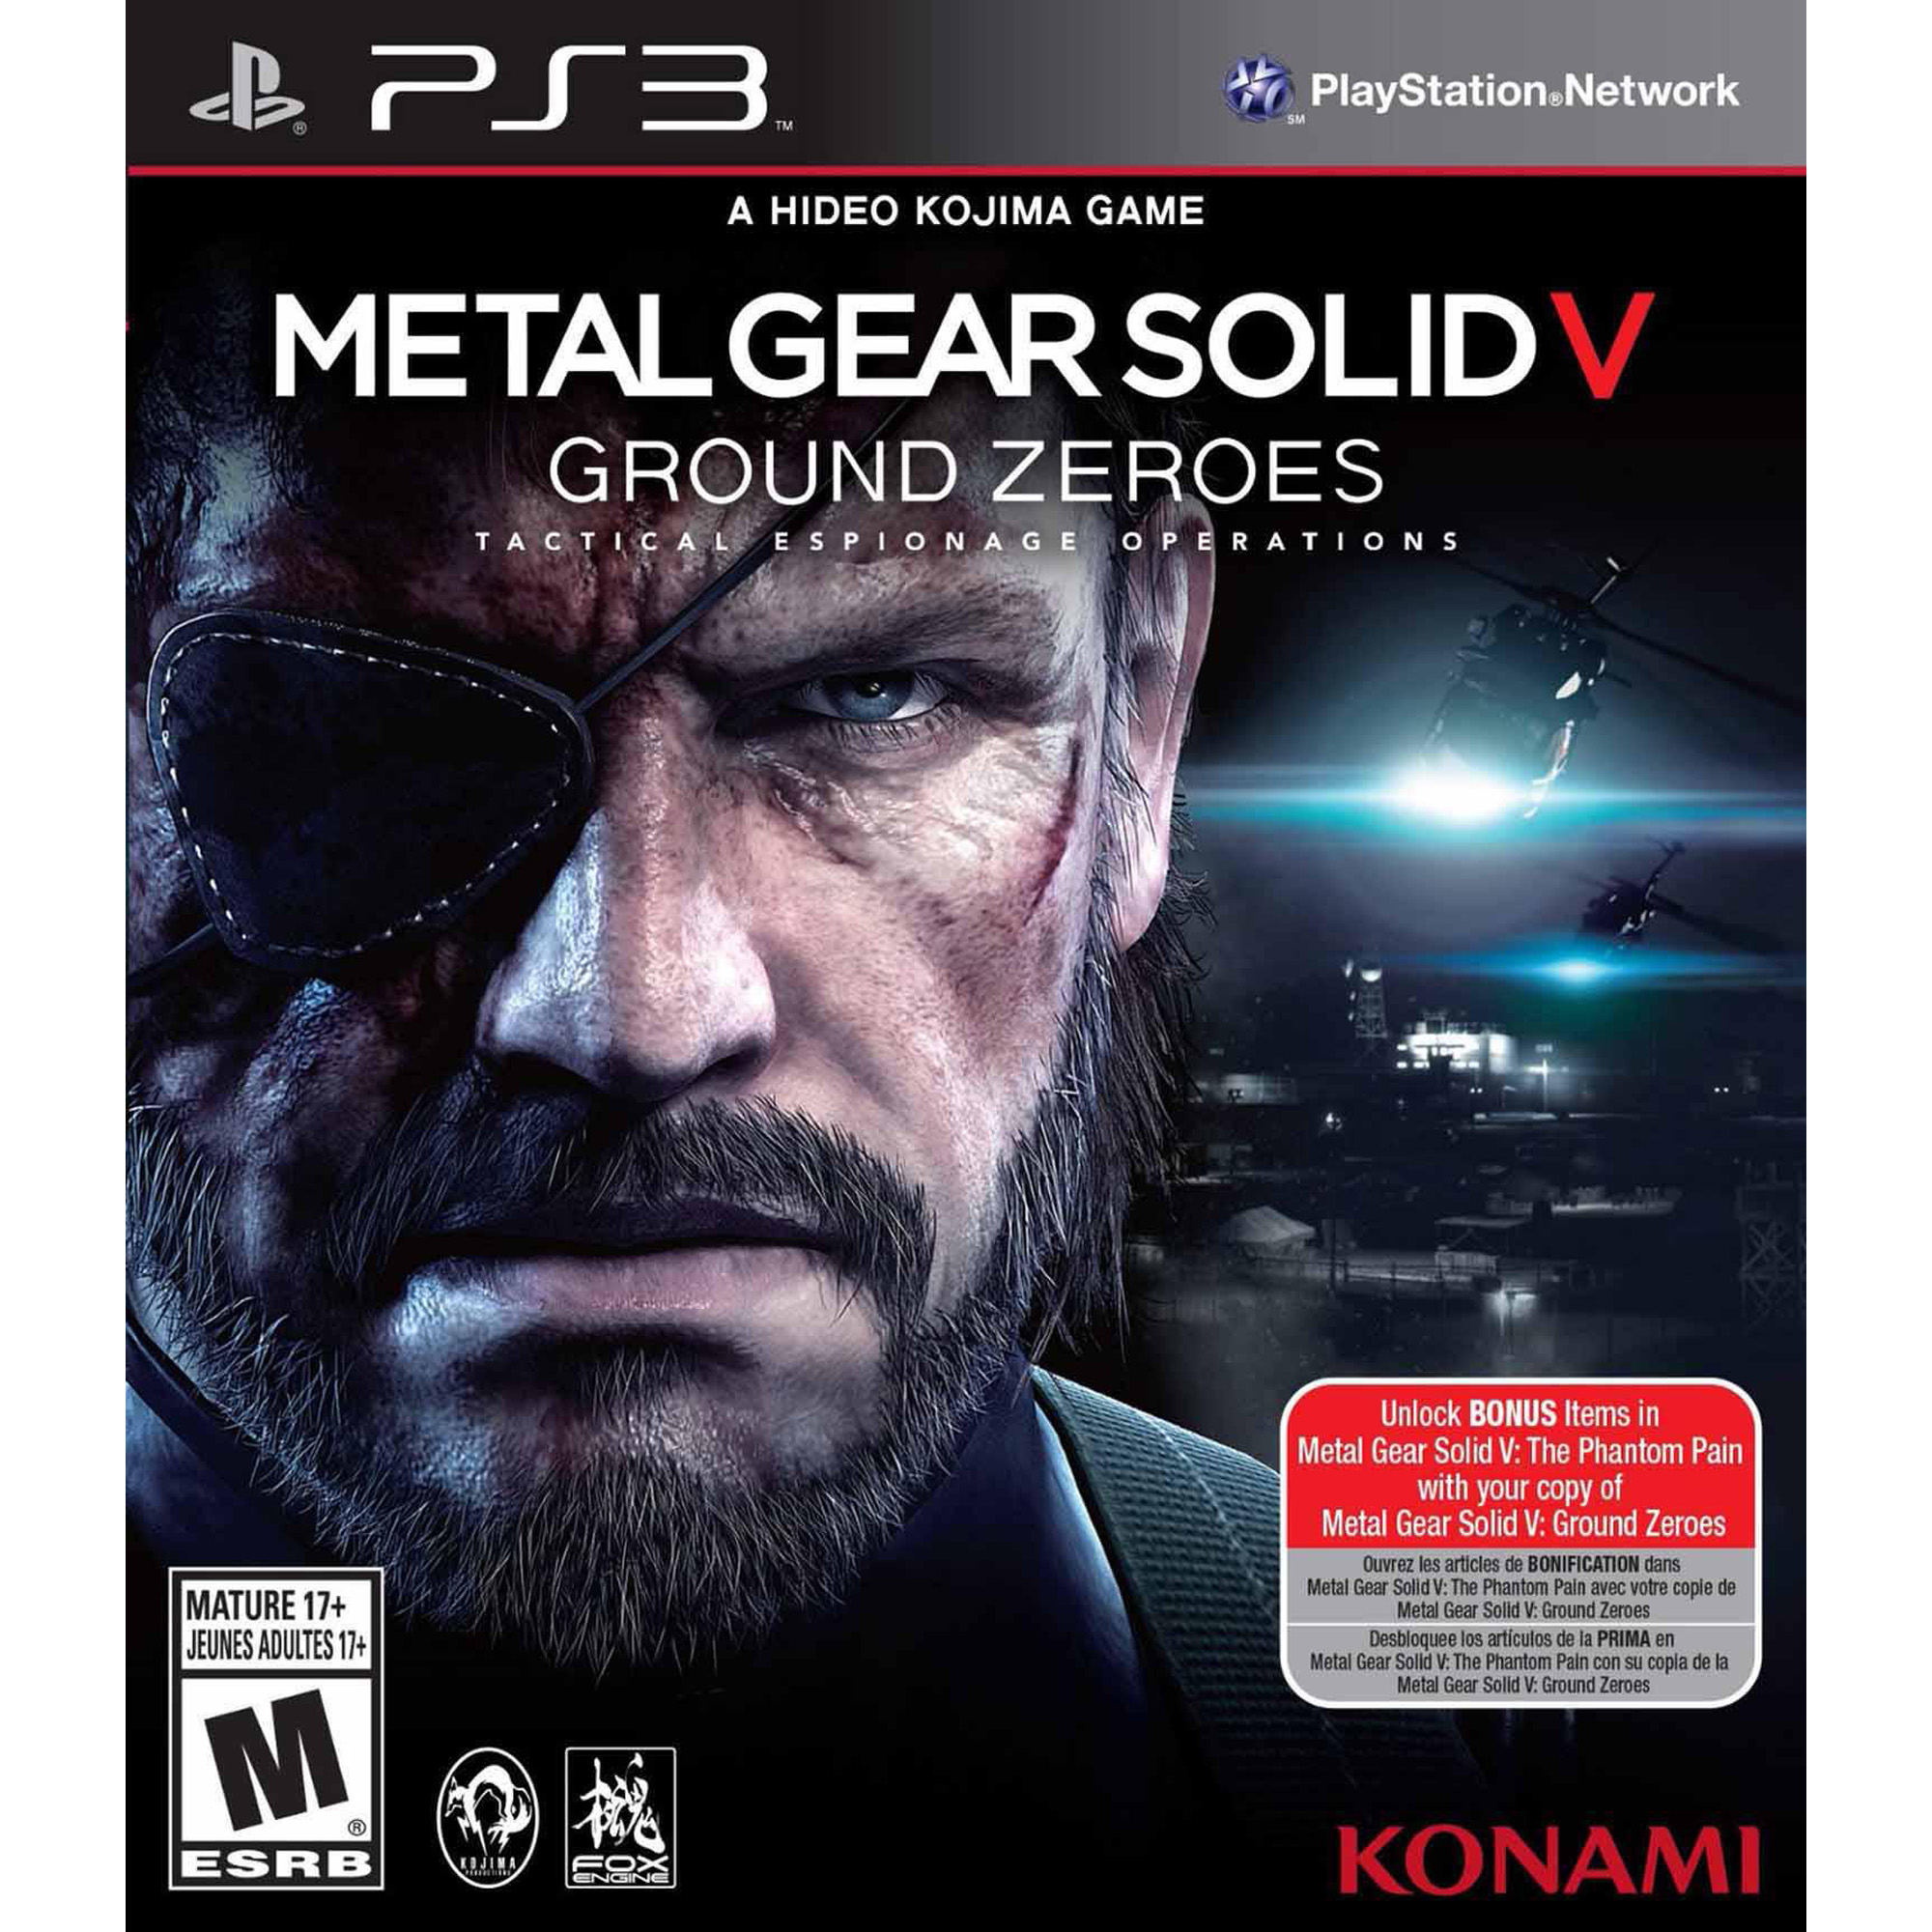 Metal Gear Solid V: Ground Zeroes (PS3) - Pre-Owned